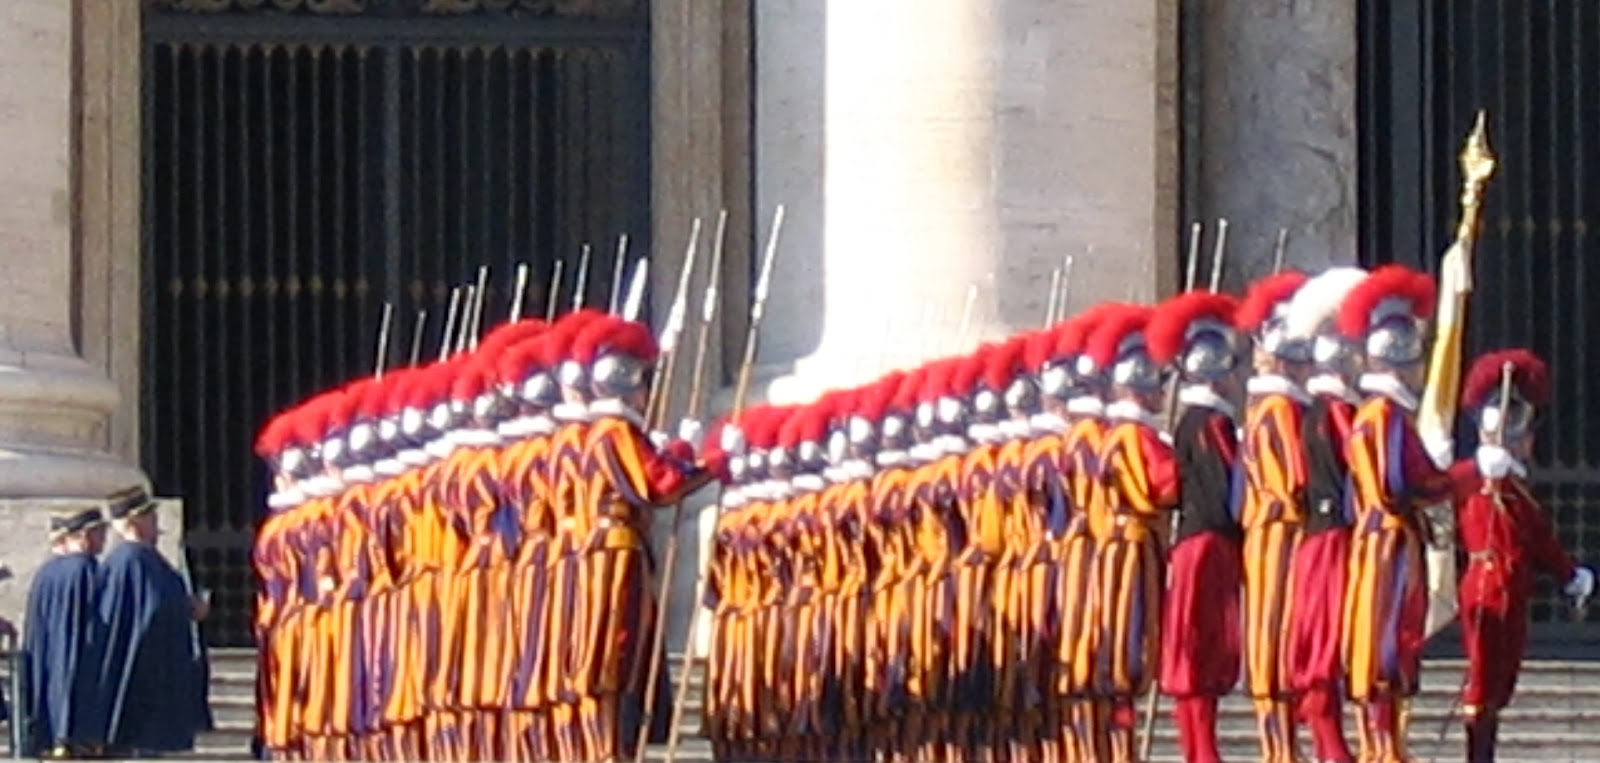 The Swiss Guard in St Peters Square, Rome